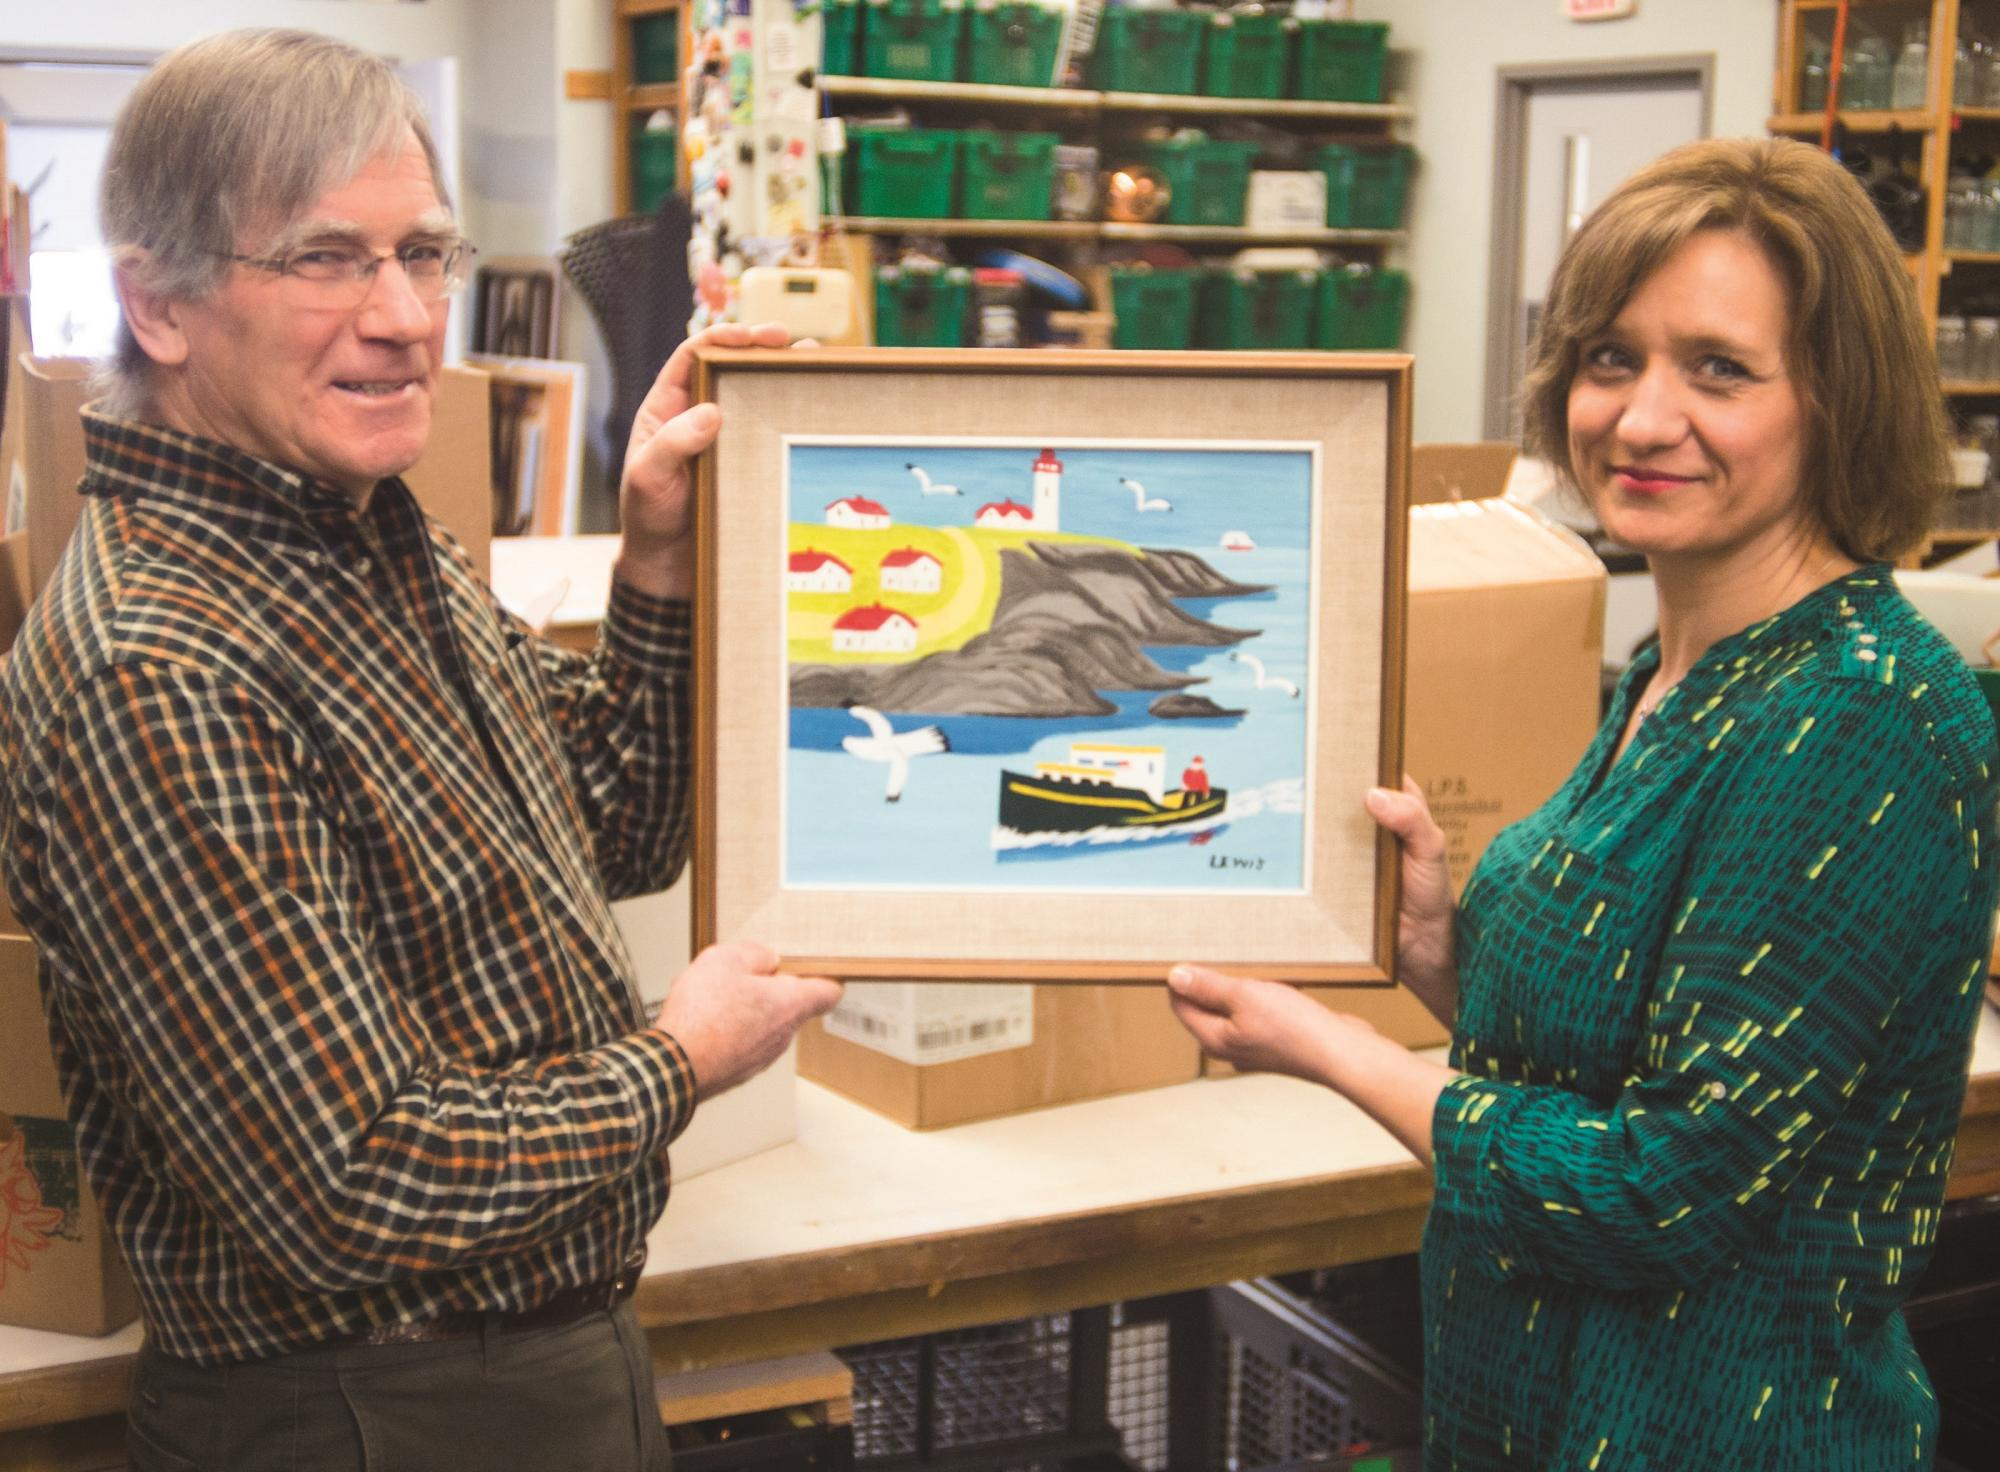 Lost Work Of Canadian Painter Turns Up In MCC Thrift Shop